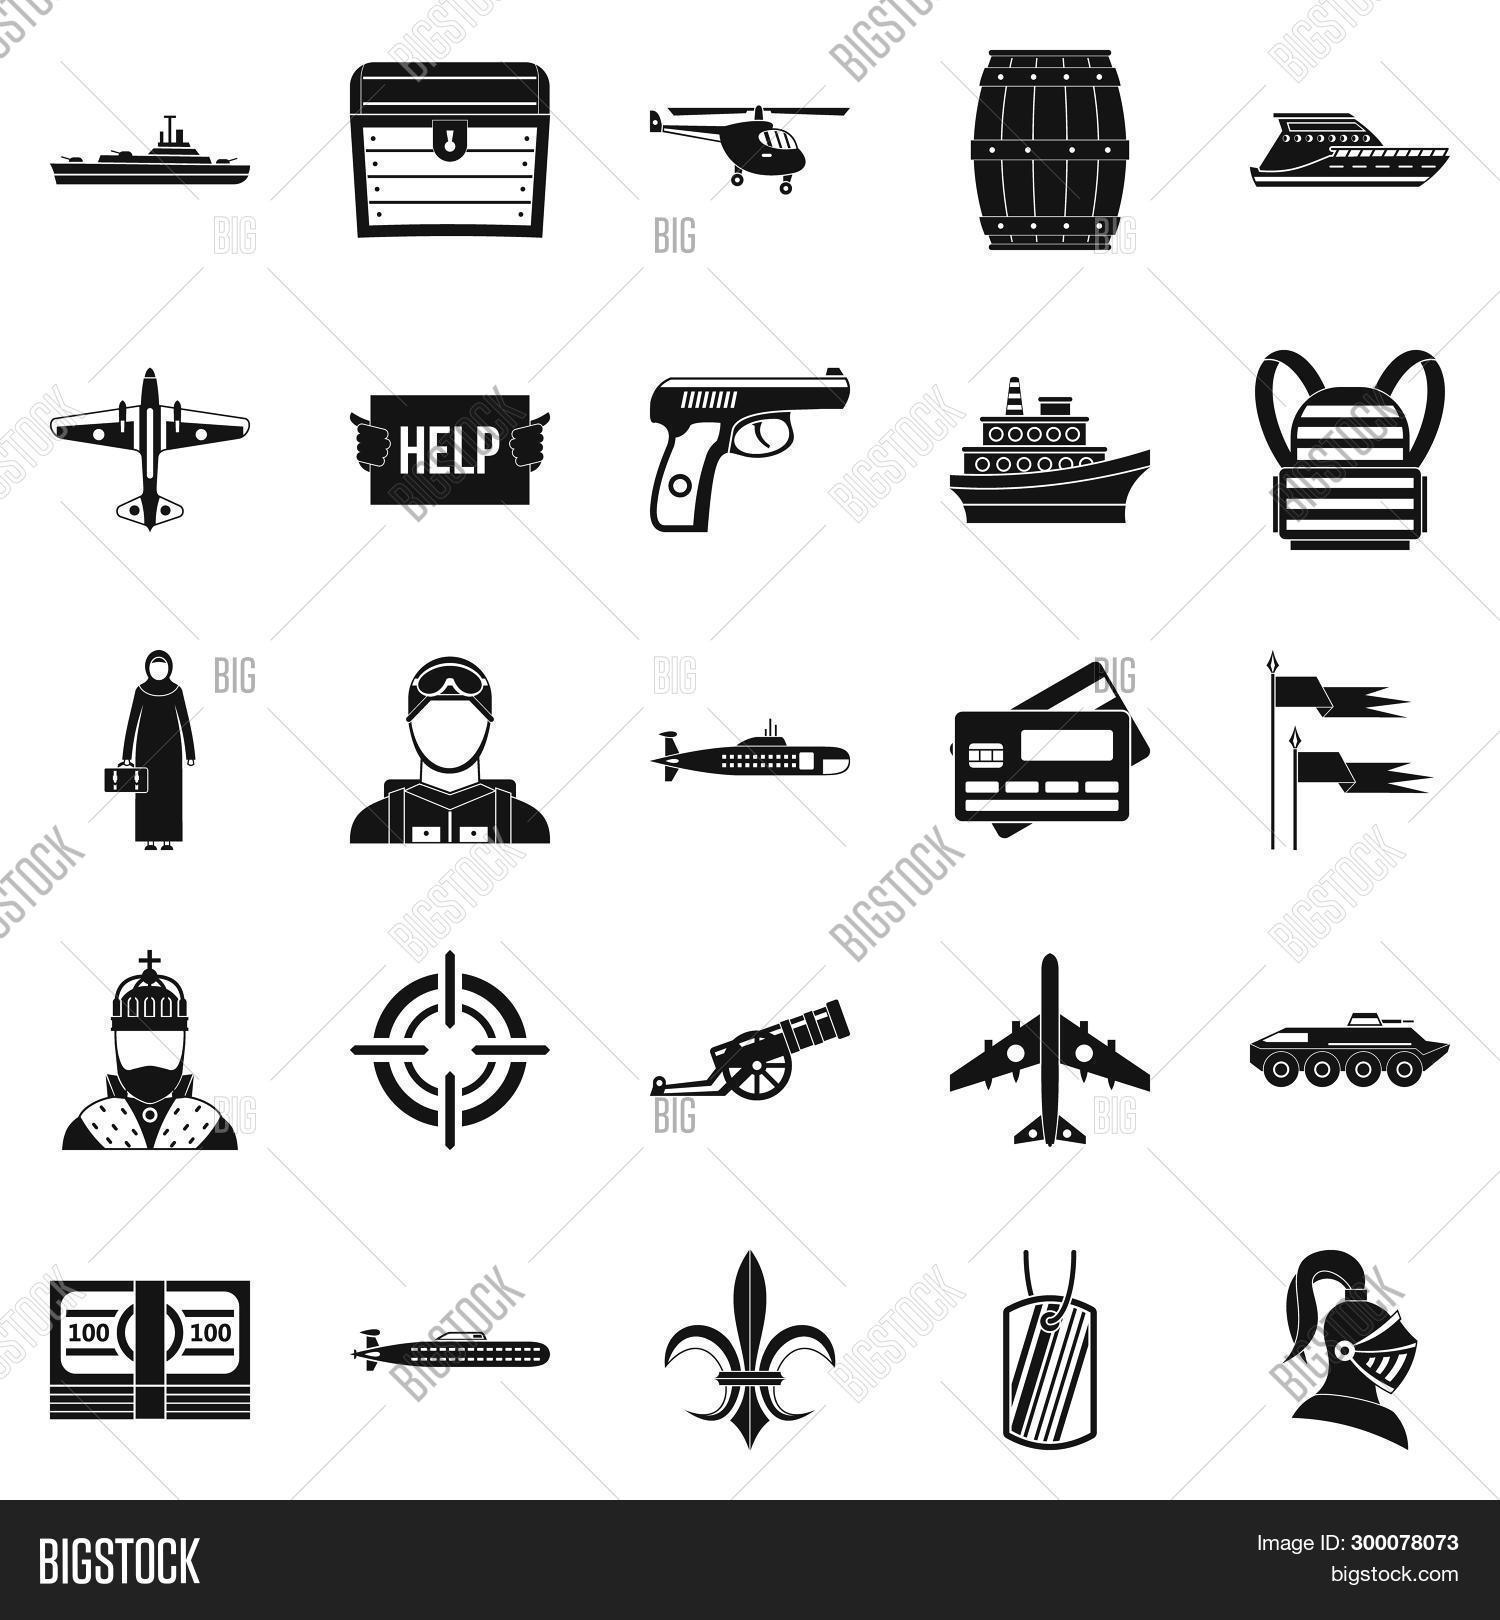 air,airbase,aircraft,airplane,airport,army,attack,aviation,base,battle,black,bomb,bullet,city,combat,combatant,conflict,equipment,explosion,fight,figure,force,grenade,gun,helicopter,icons,illustration,isolated,man,military,navy,parachute,people,plane,rocket,set,simple,soldier,stick,tank,target,technology,terrorism,vehicles,war,wartime,weapon,wire,world